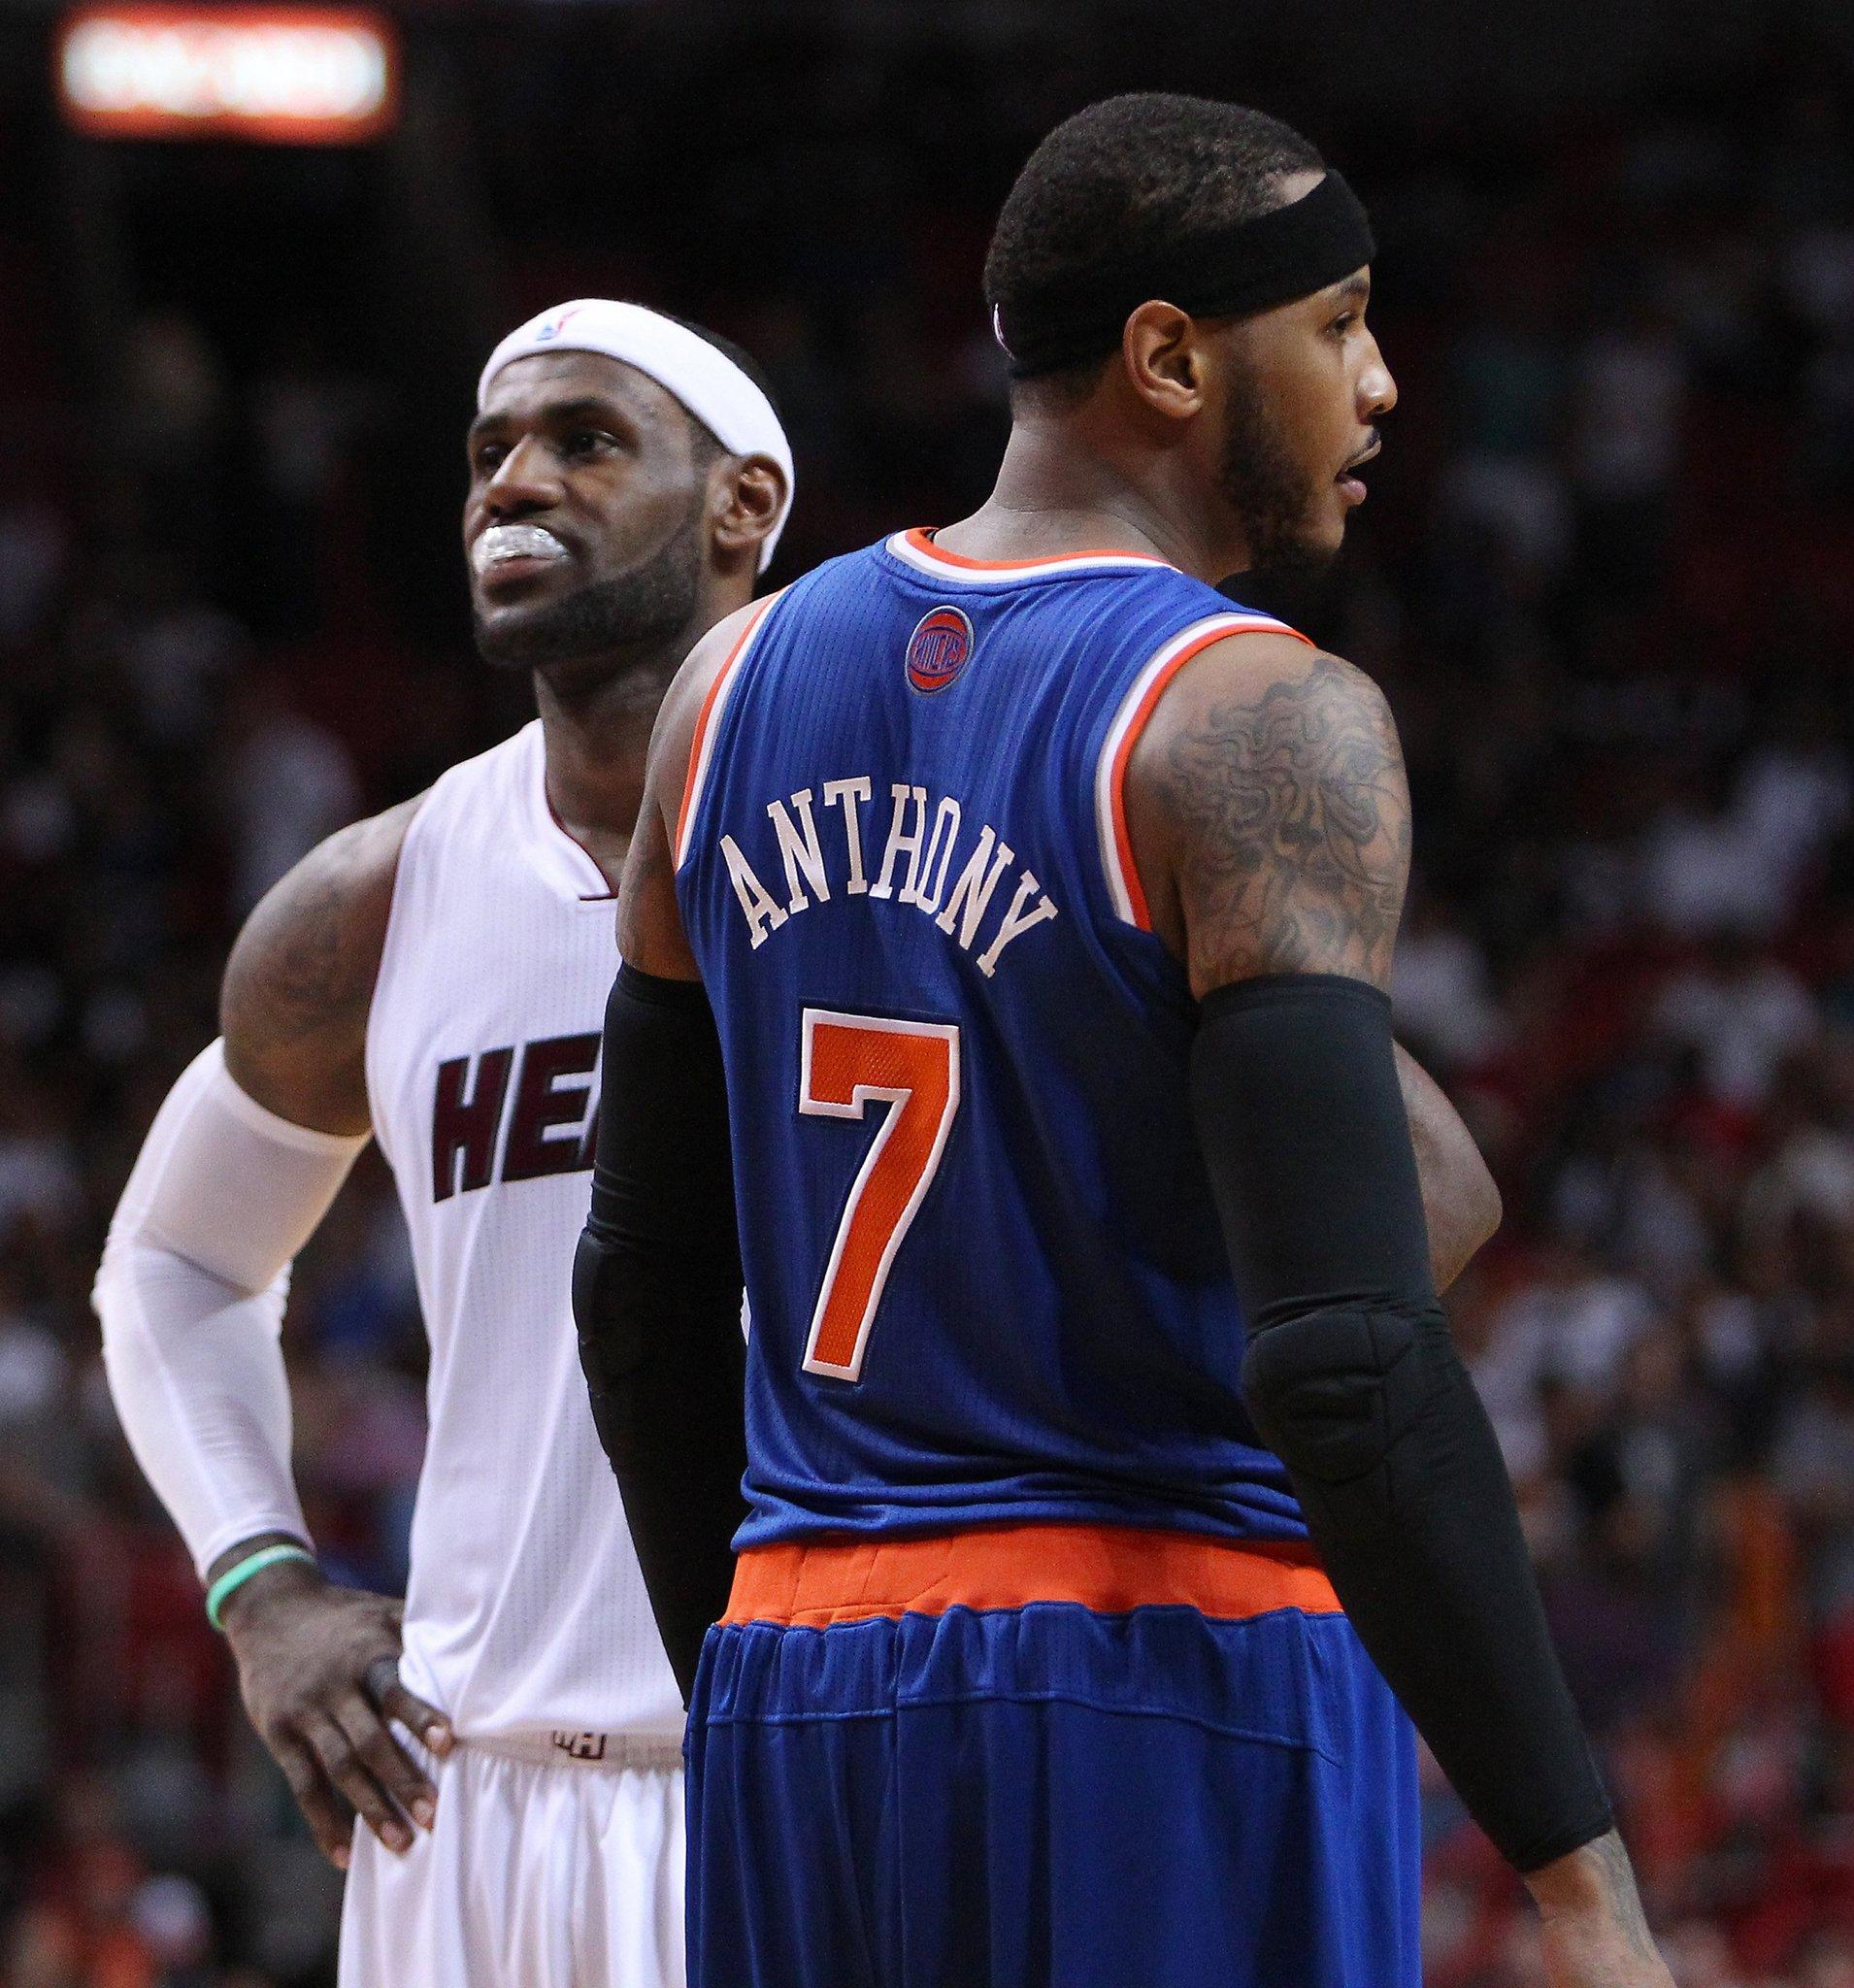 The Heat's LeBron James and the Knicks' Carmelo Anthony during the third quarter at the AmericanAirlines Arena in Miami.